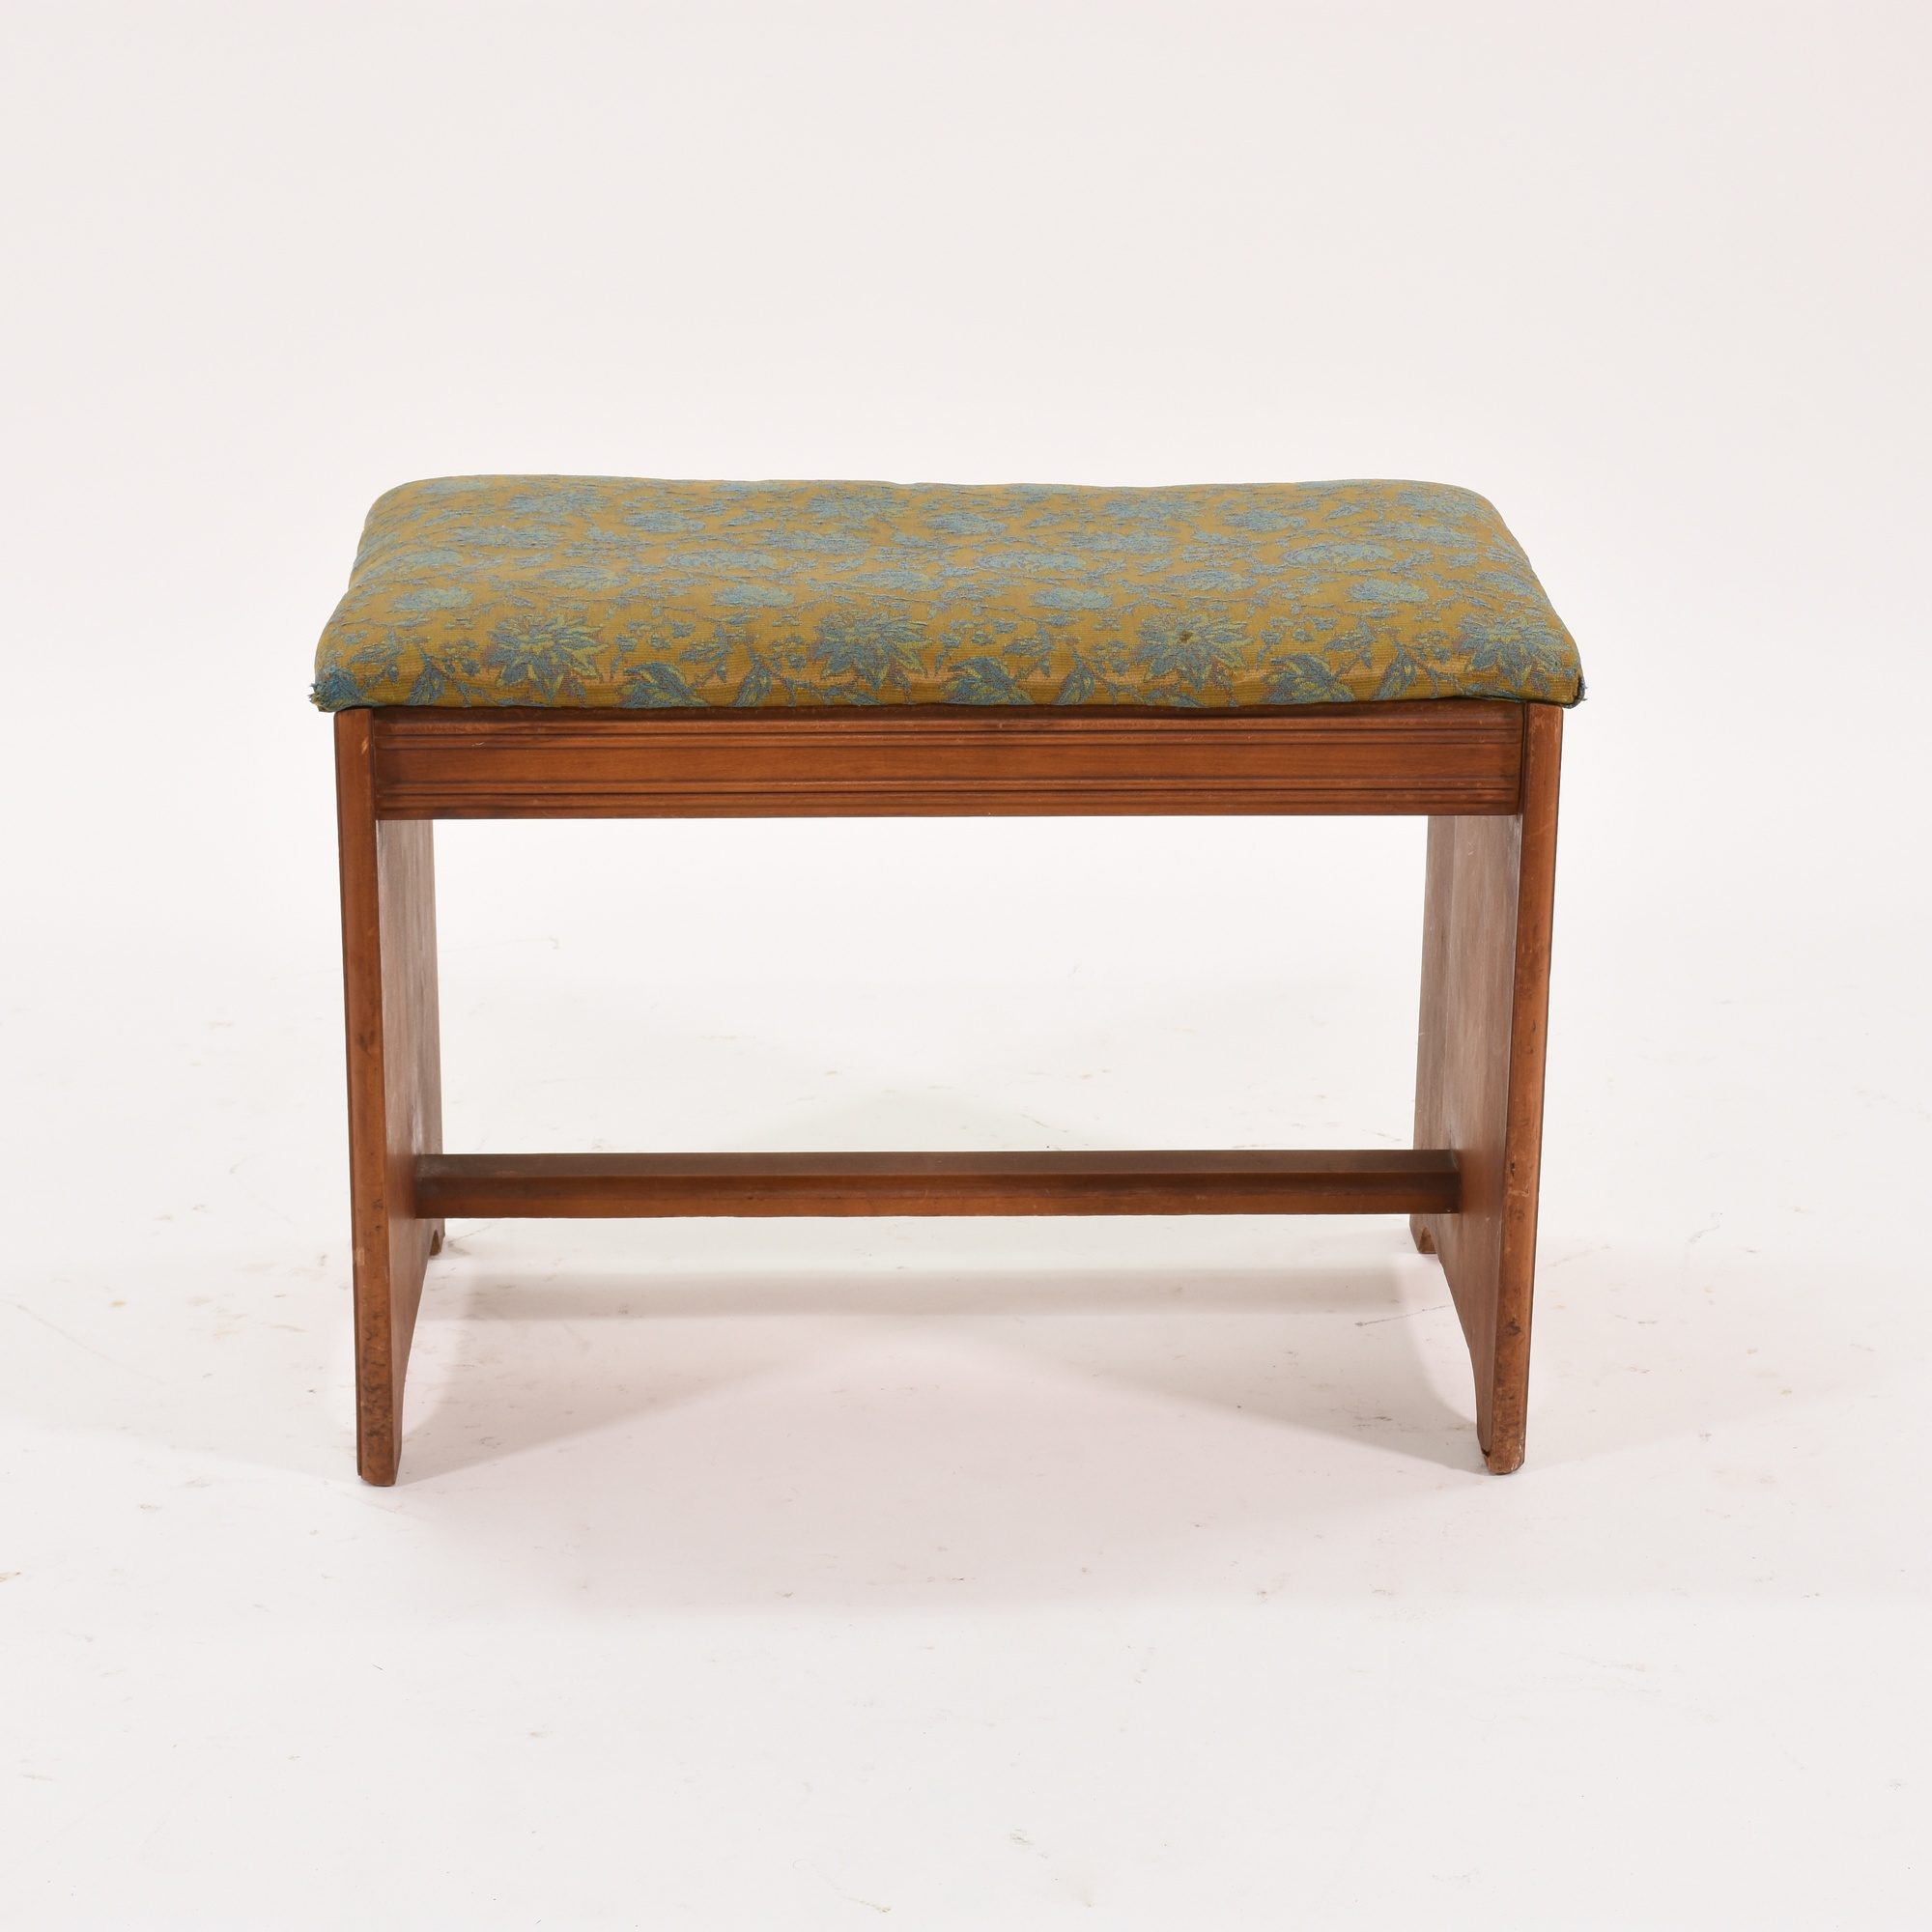 Nantucket Storage Bench Cottage Style Solid Wood 15: Antique Solid Wood Bench Upholstered In Floral